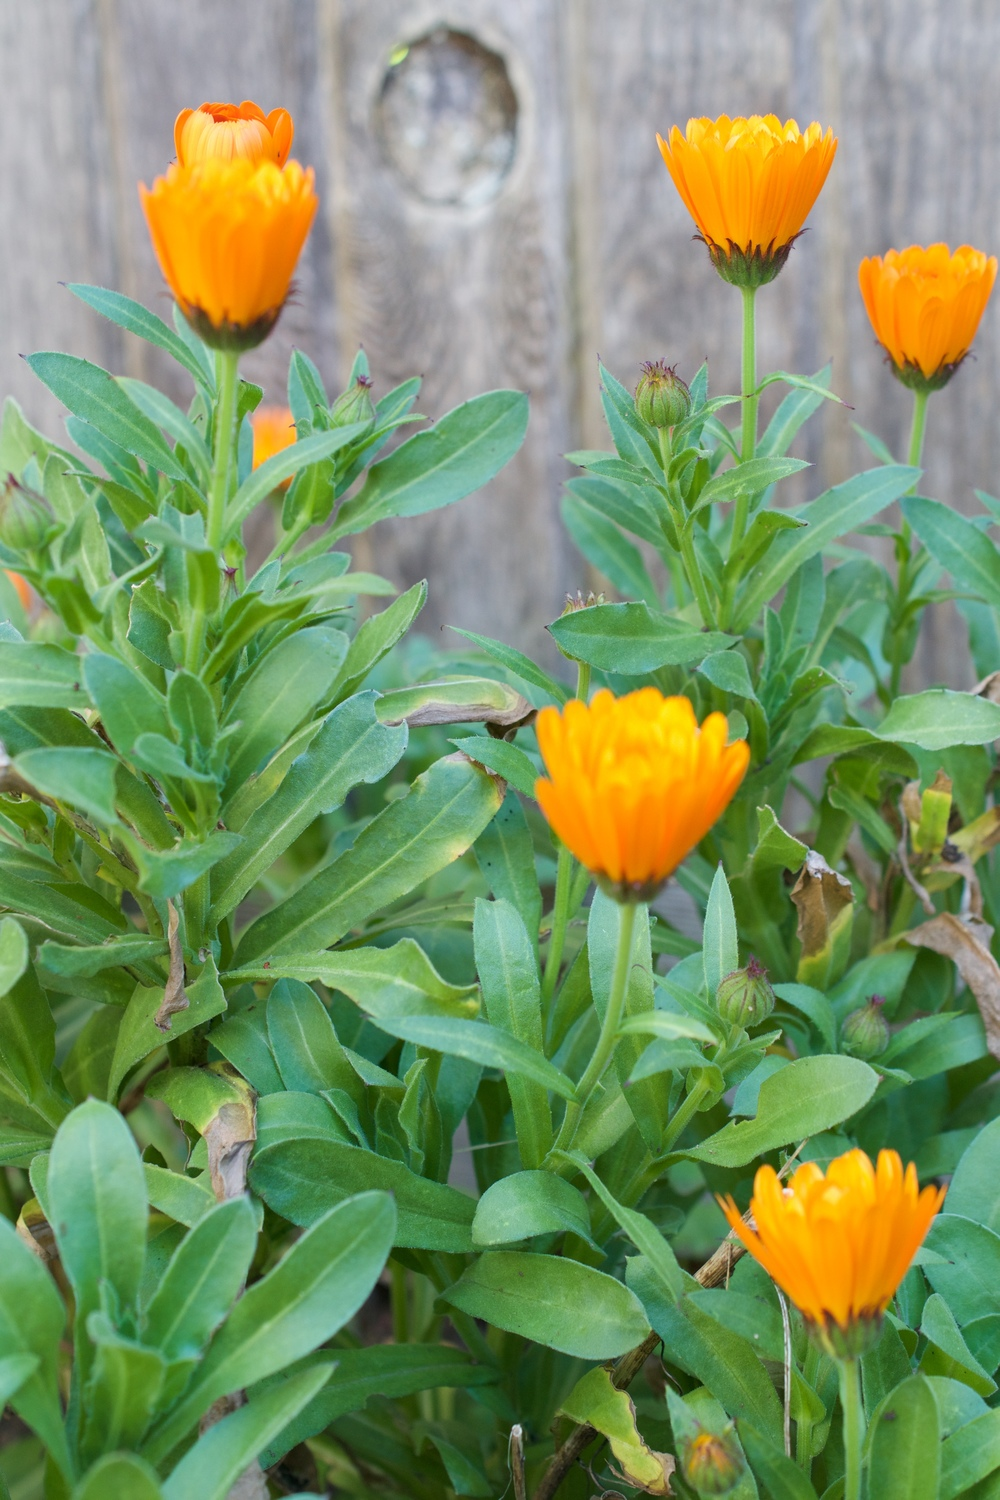 Calendula once established in a garden or roadside will spread and produce more flowers if you cut them often.